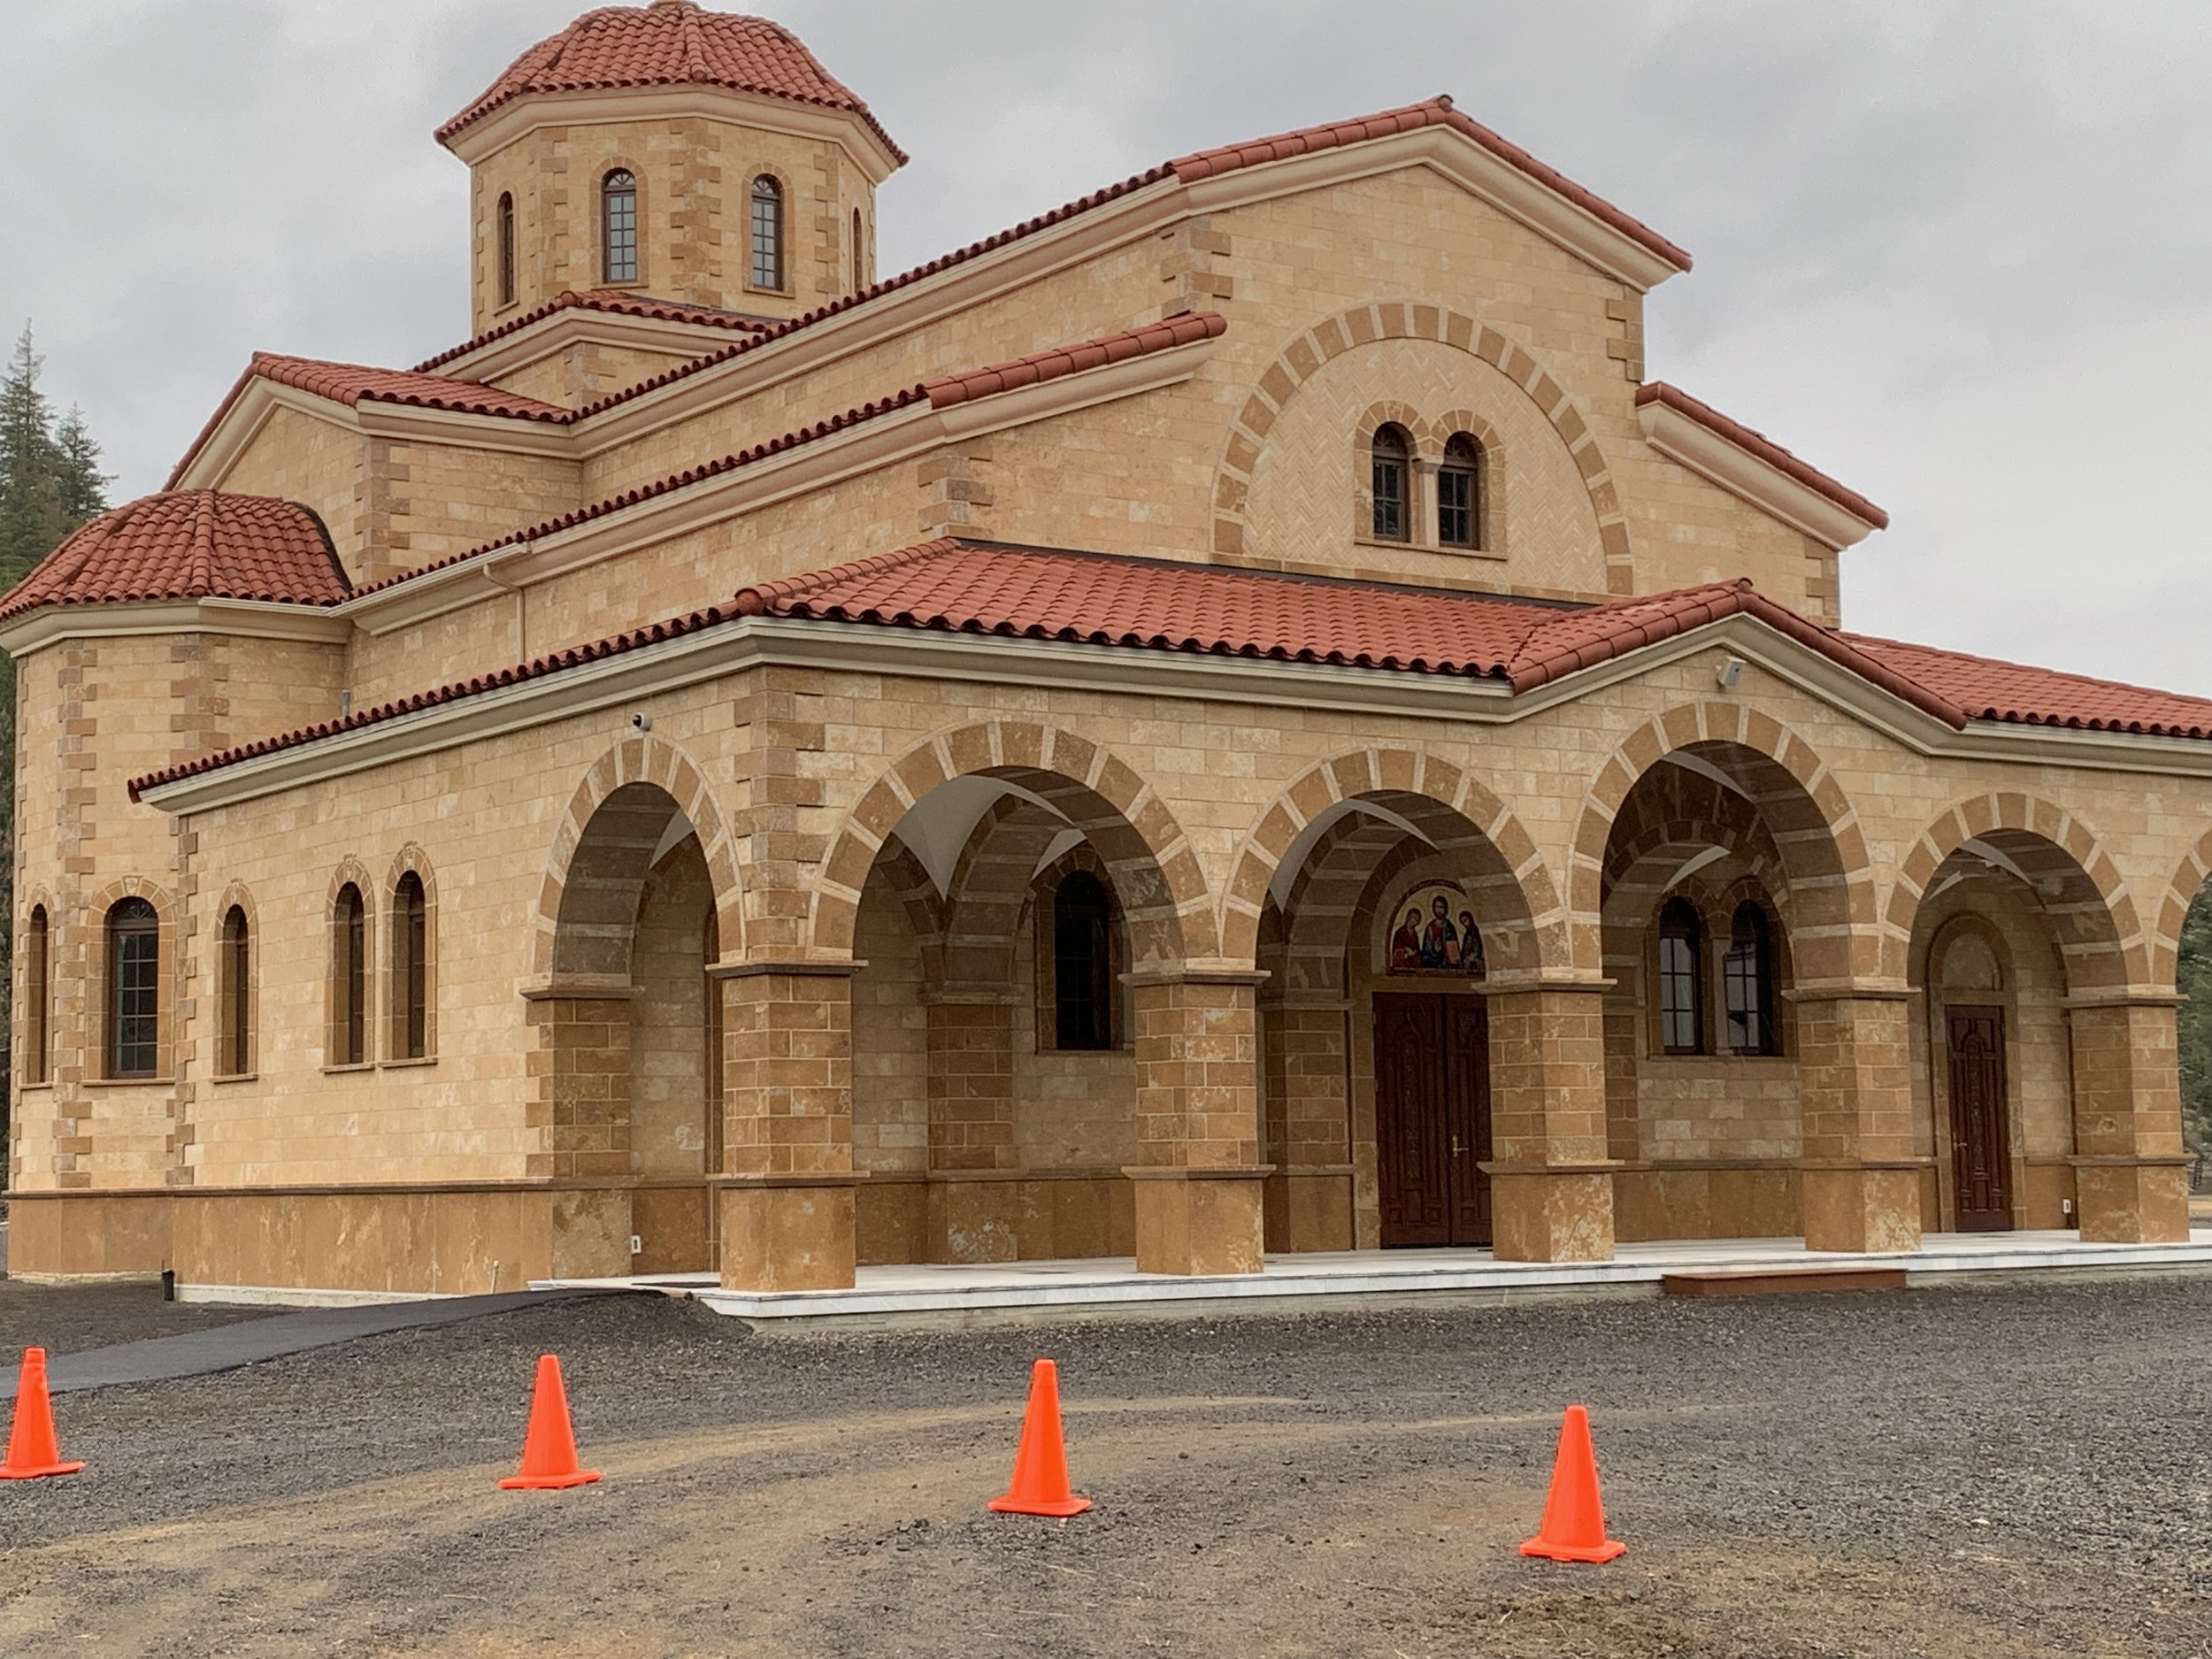 The completed $2 million church at at the Holy Monastery of St. John the Forerunner. Photo by Julia Duin.